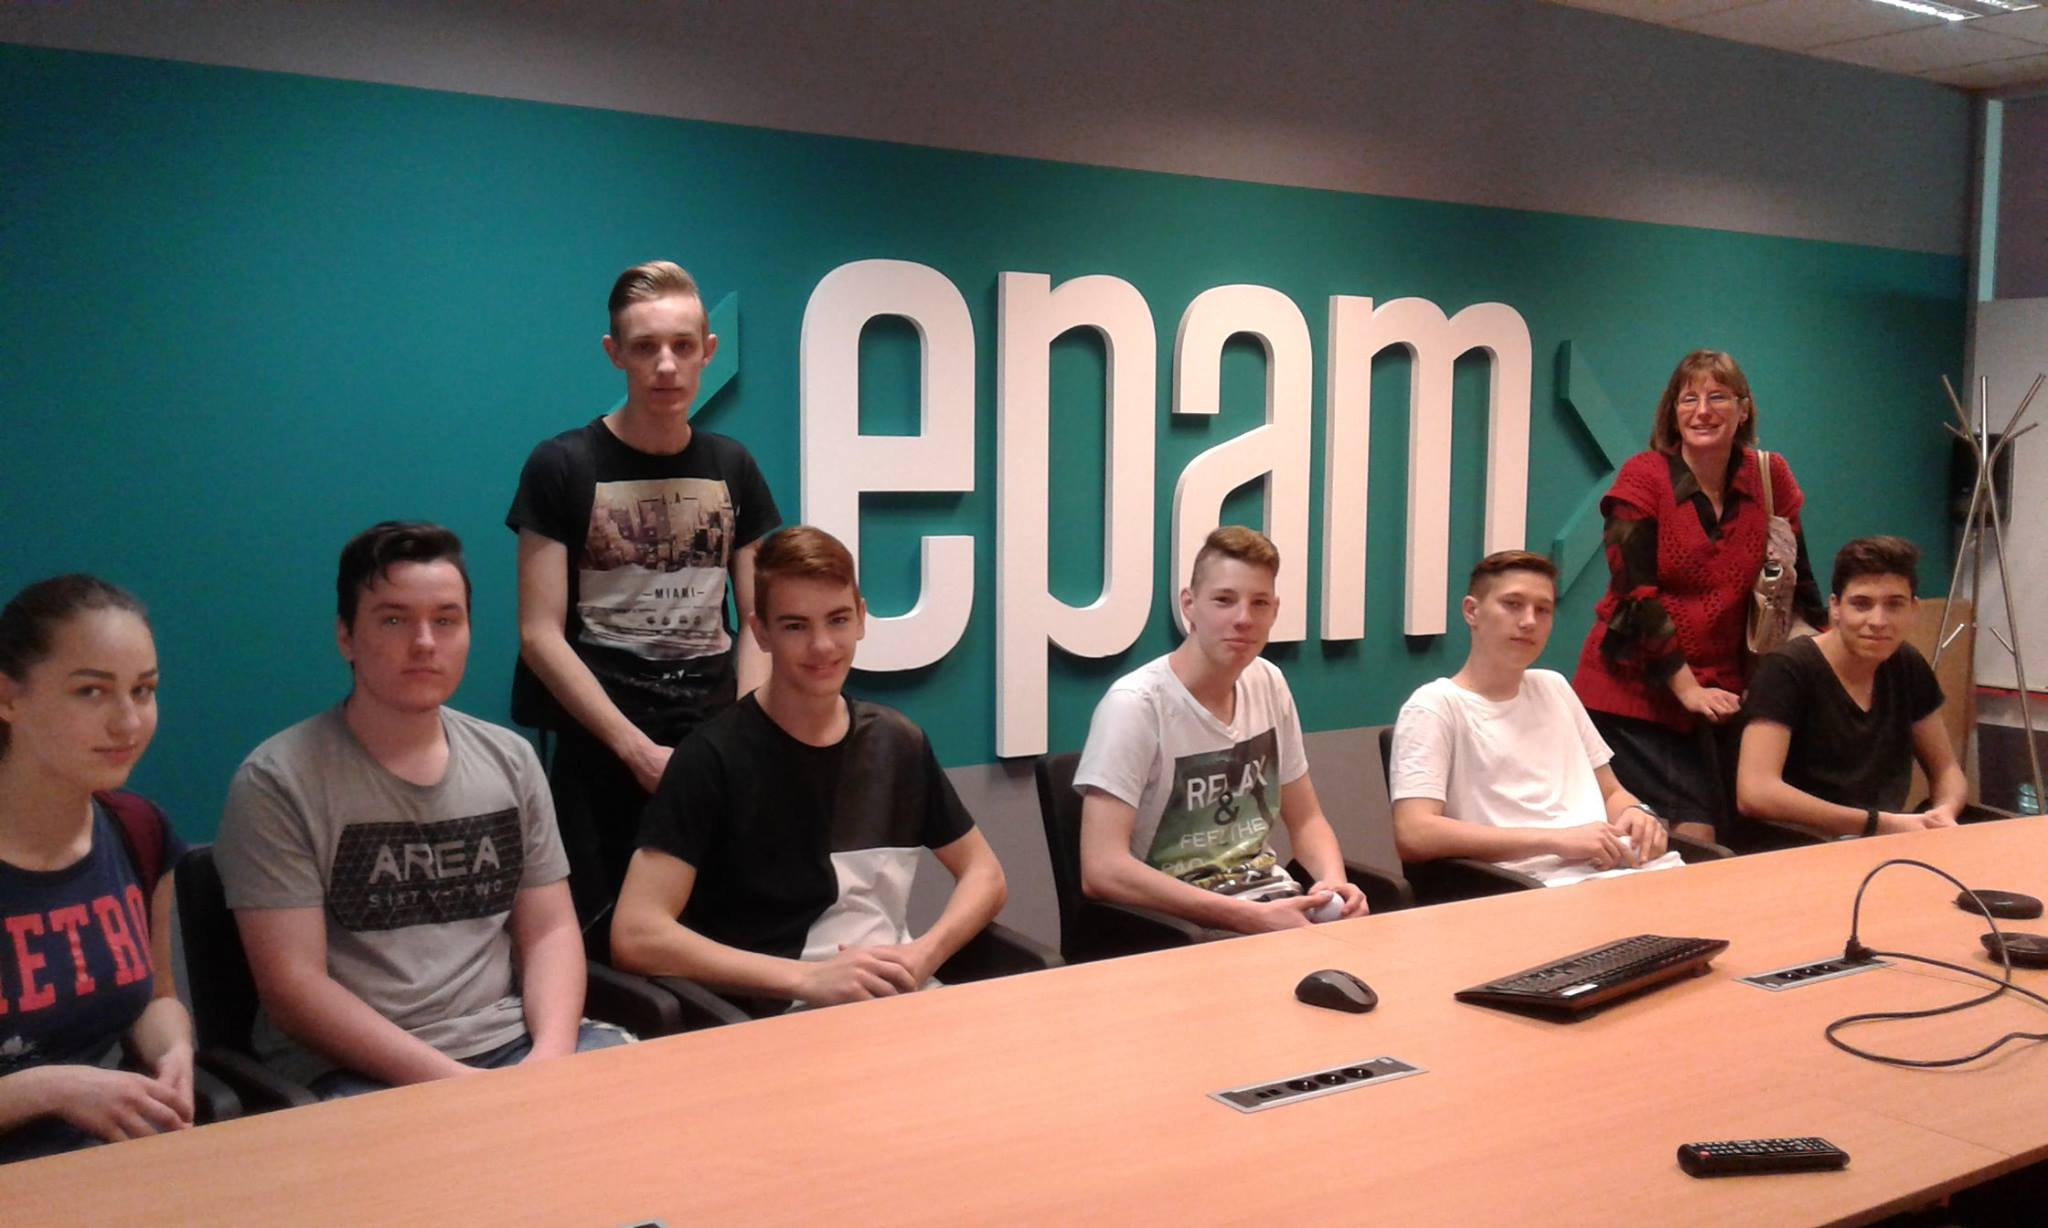 EPAM Engages 1,500 Students in Coding Activities